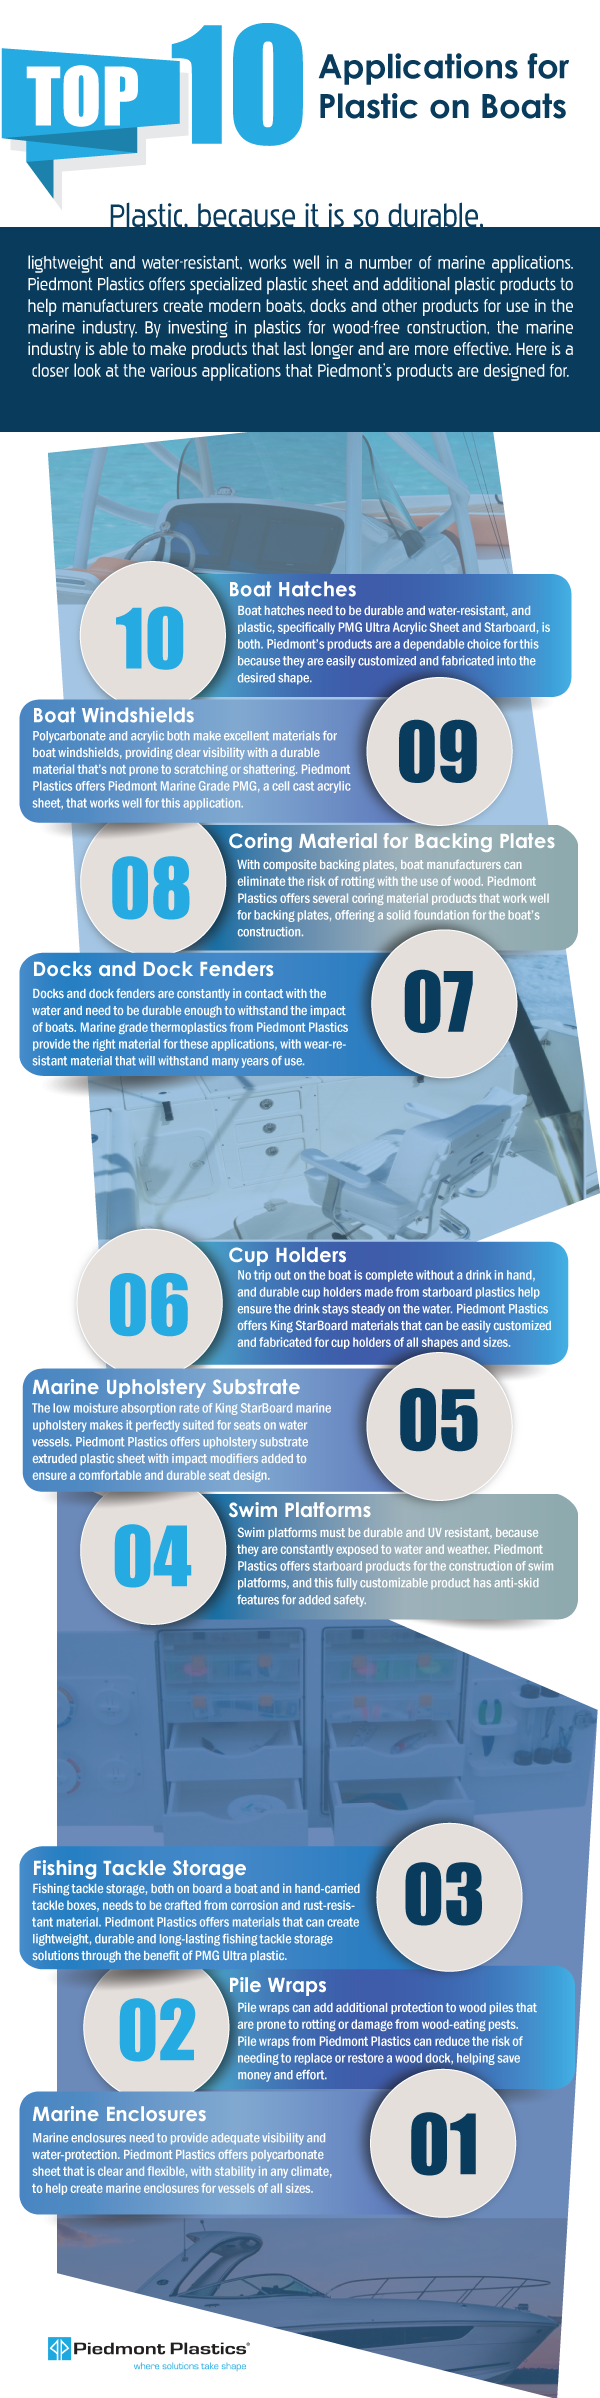 Top 10 Applications for Plastic on Boats